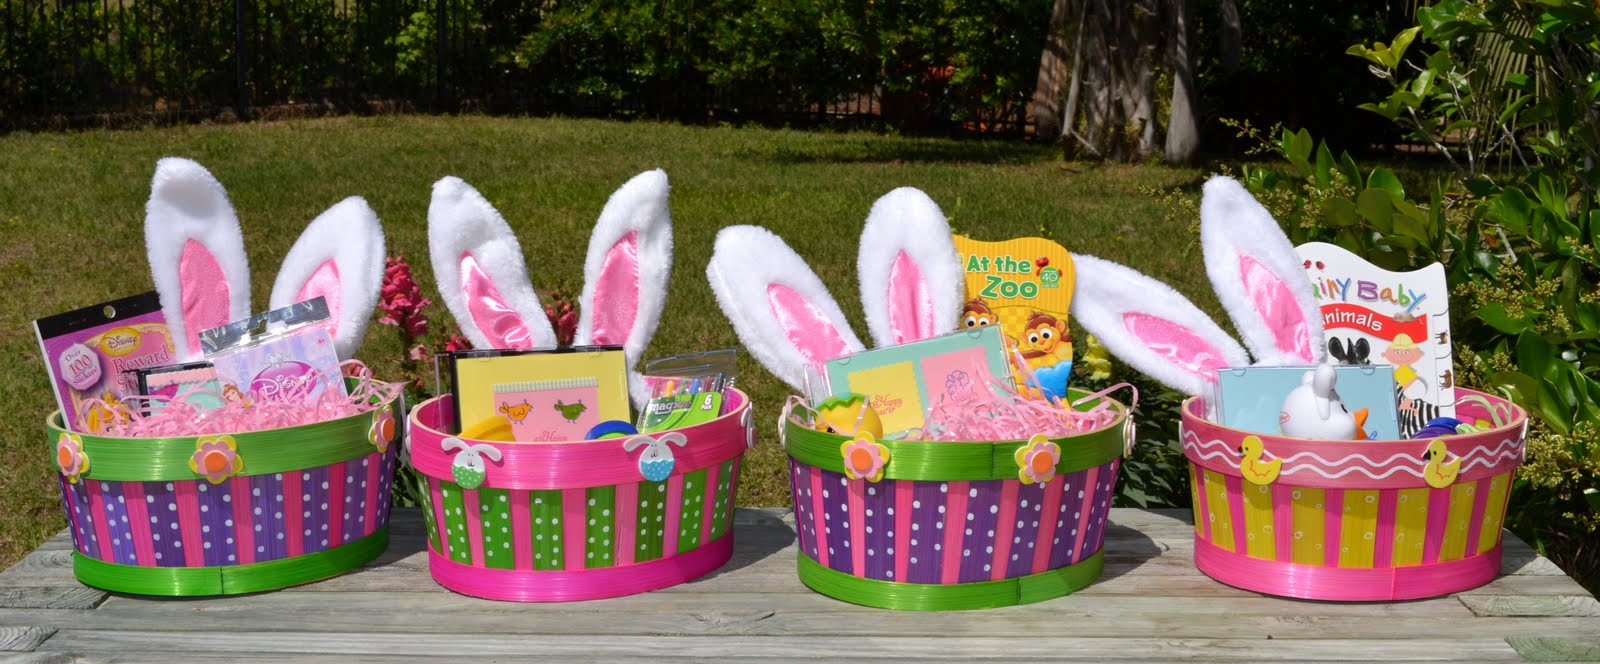 Stamp camp mollys easter egg hunt baskets mias basket turned out fun too shes got some tattoos miracle bubbles which my friend jen says are named so because its a miracle you can get one negle Images